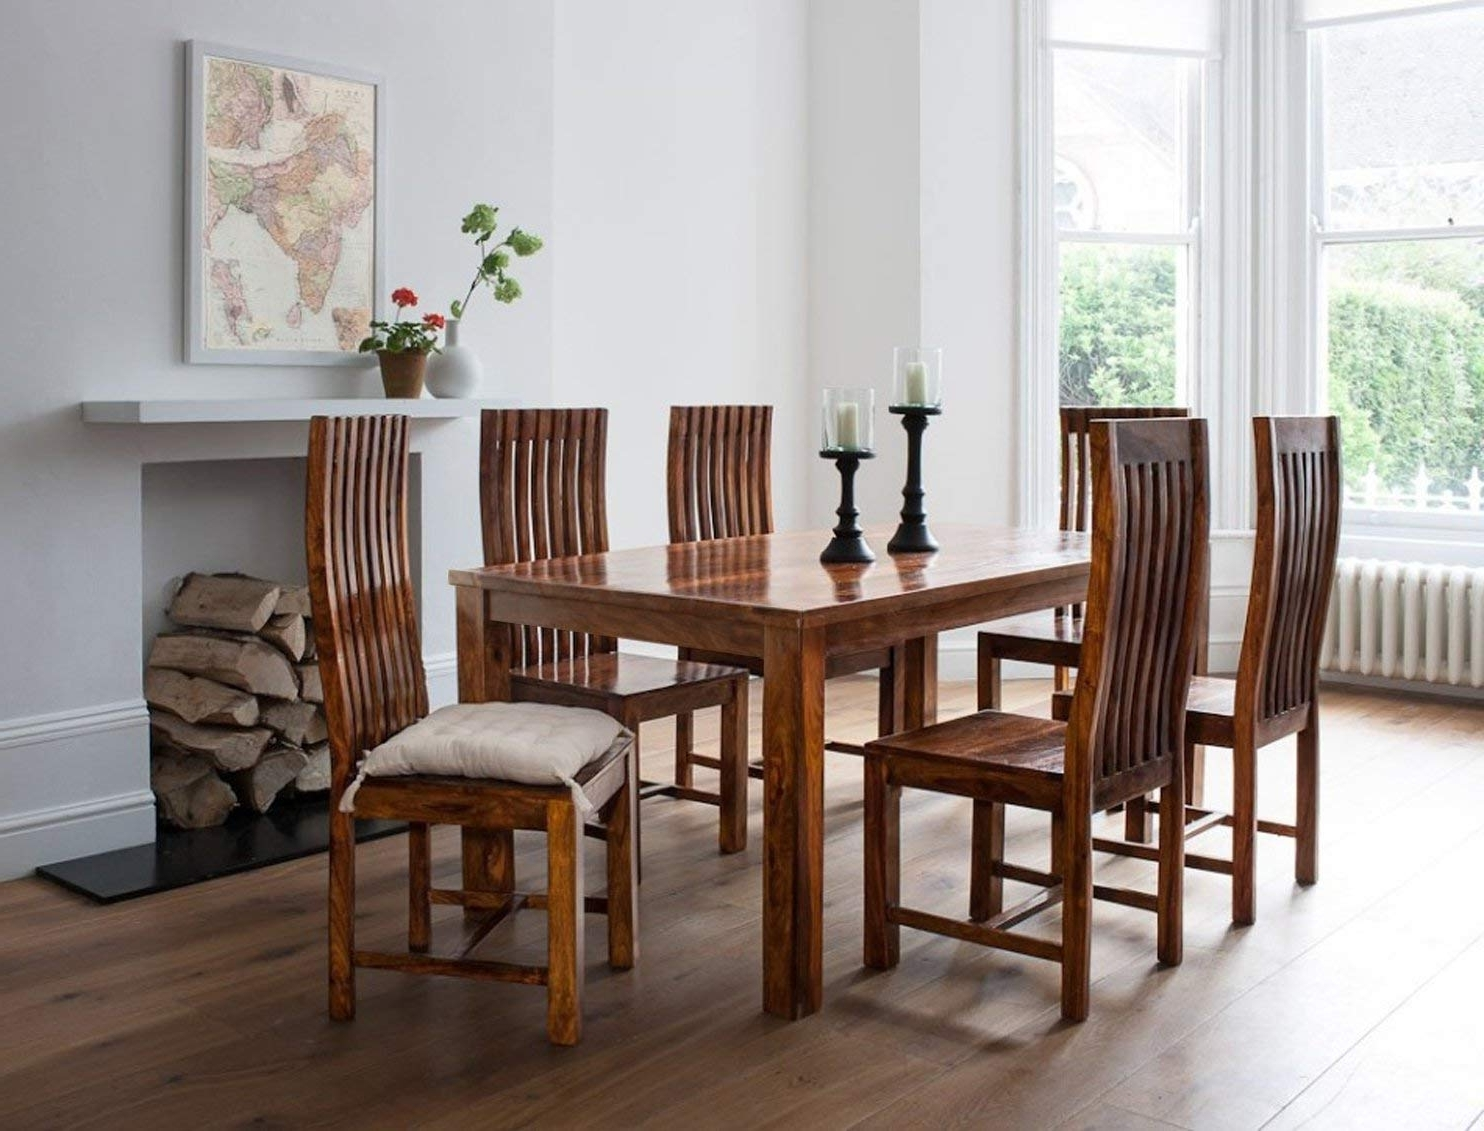 Best And Newest Indian Dining Tables And Chairs Inside Lifeestyle Handcrafted Sheesham Wood 6 Seater Dining Set (Honey (View 14 of 25)